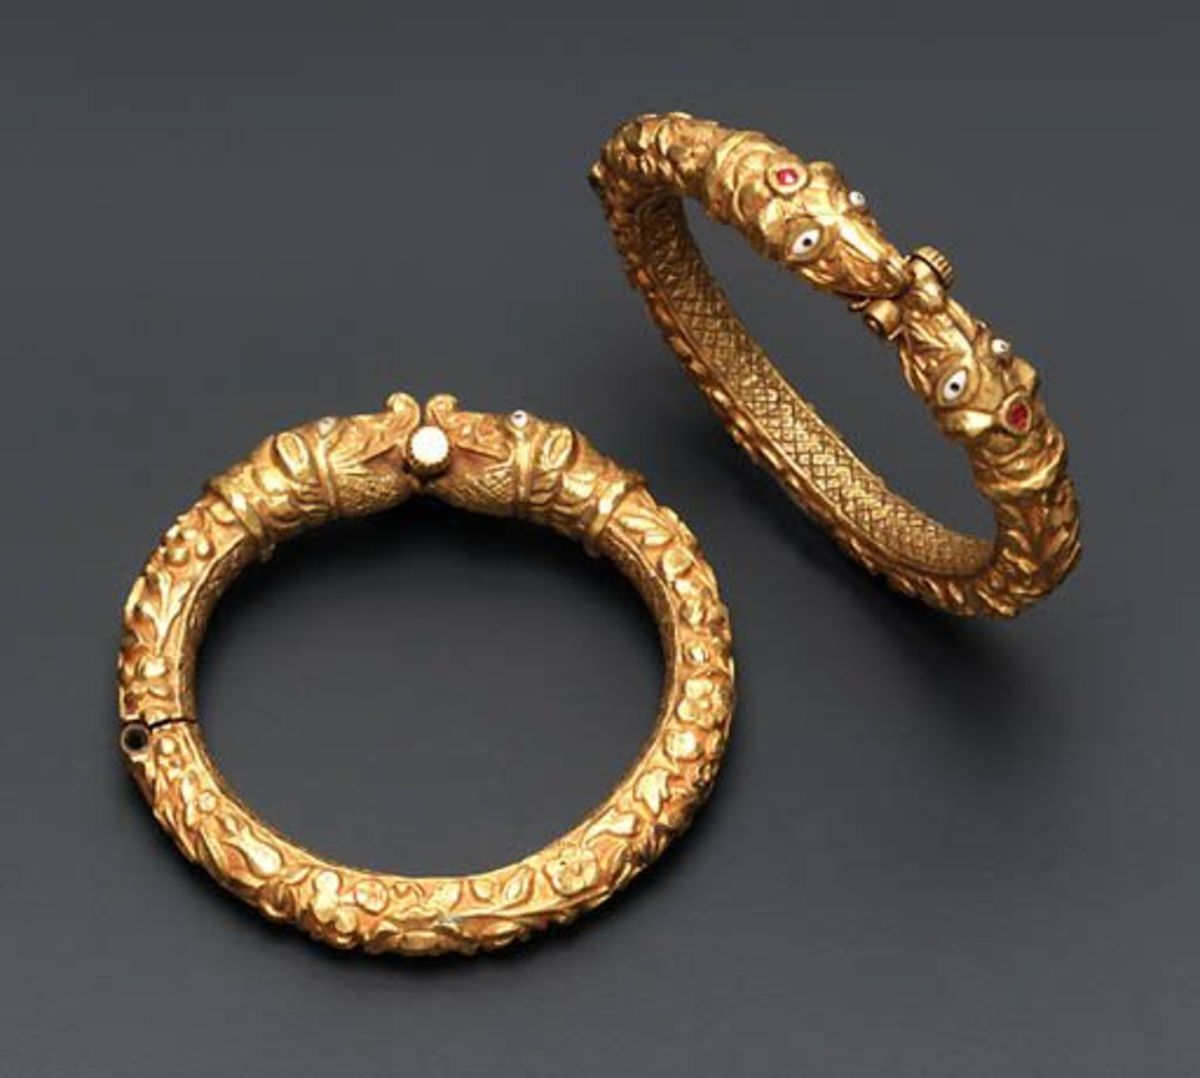 round shaped bala or bangle made of solid gold